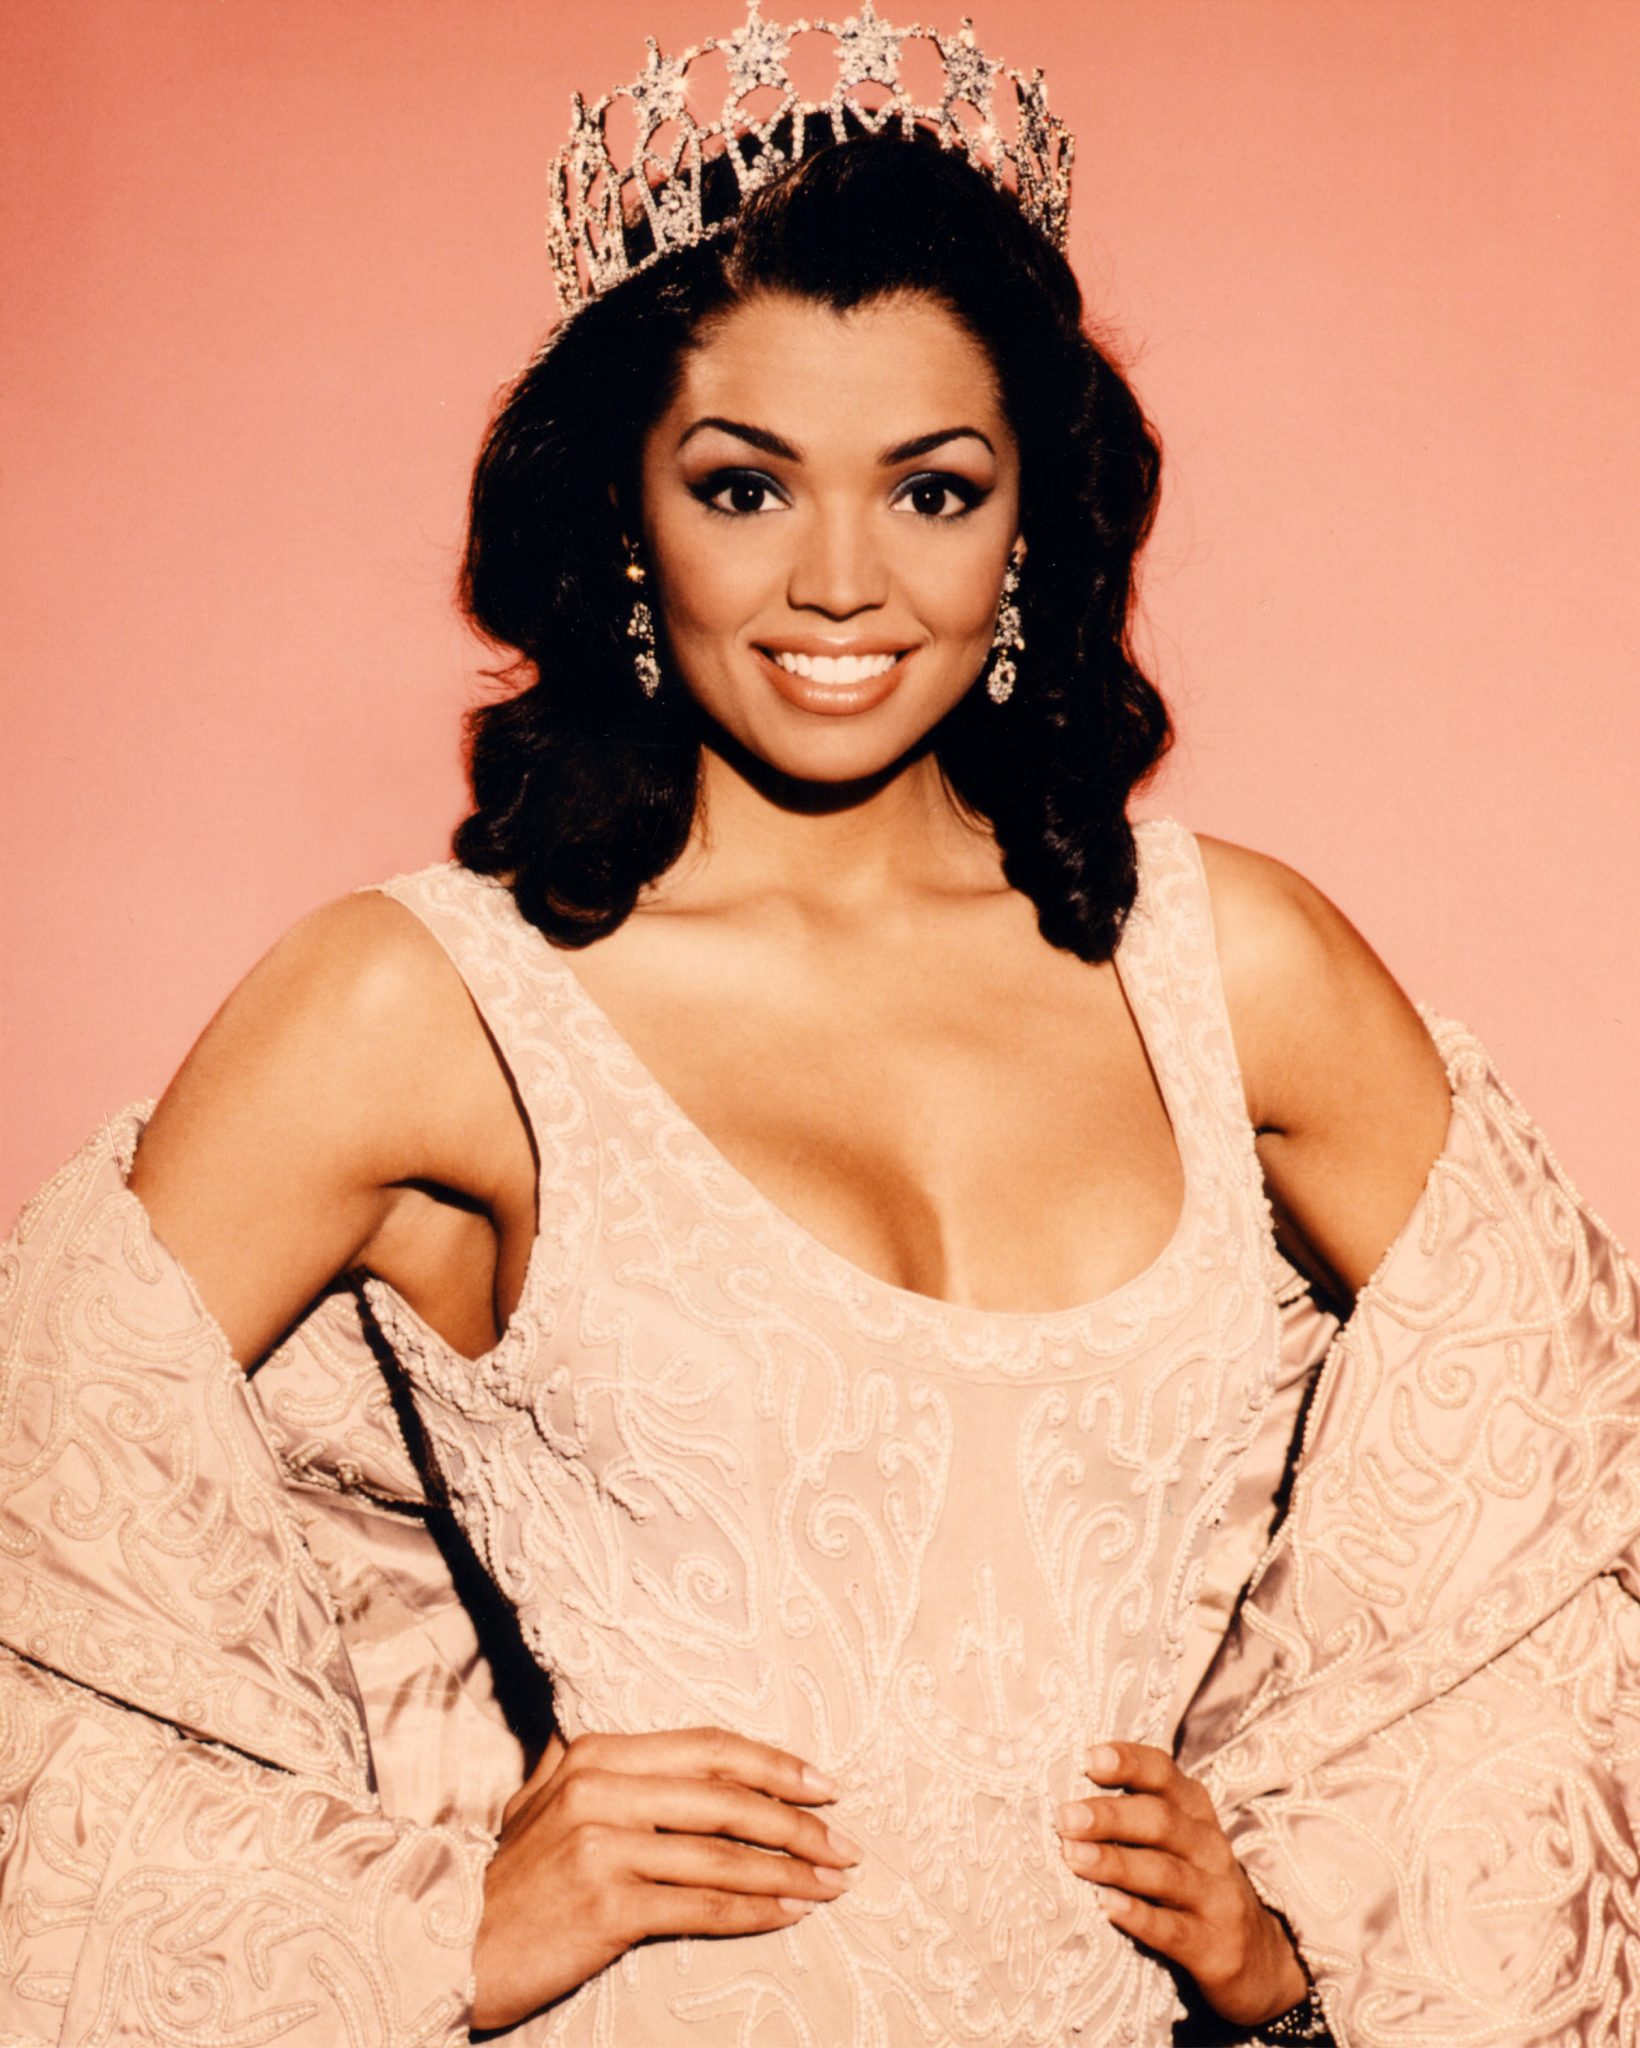 chelsi smith, miss universe 1995. † Usa19910